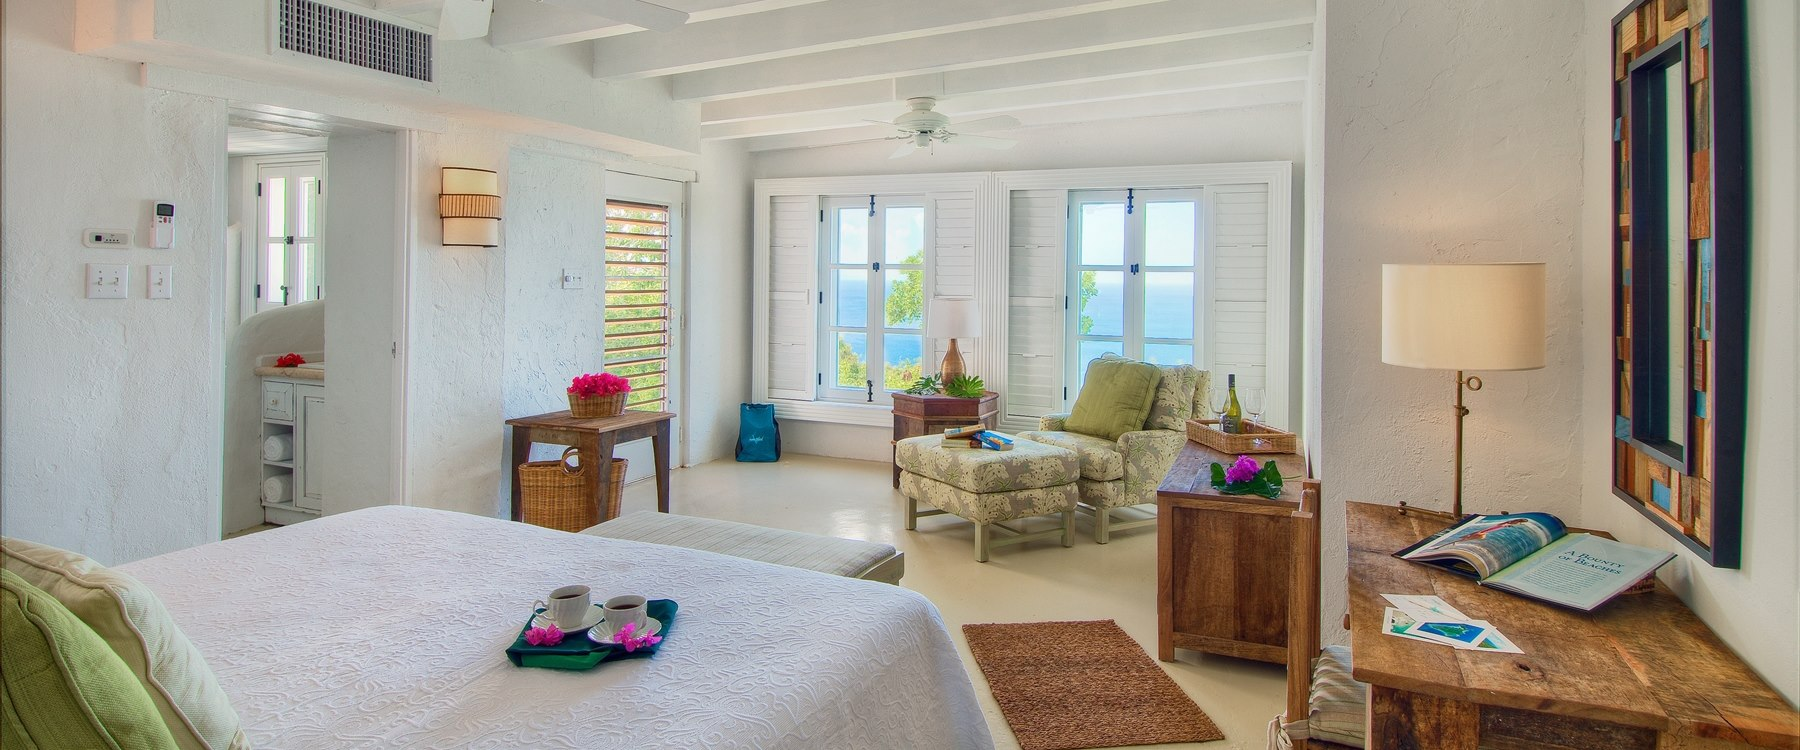 3 bedroom Villa at Guana Island, British Virgin Islands